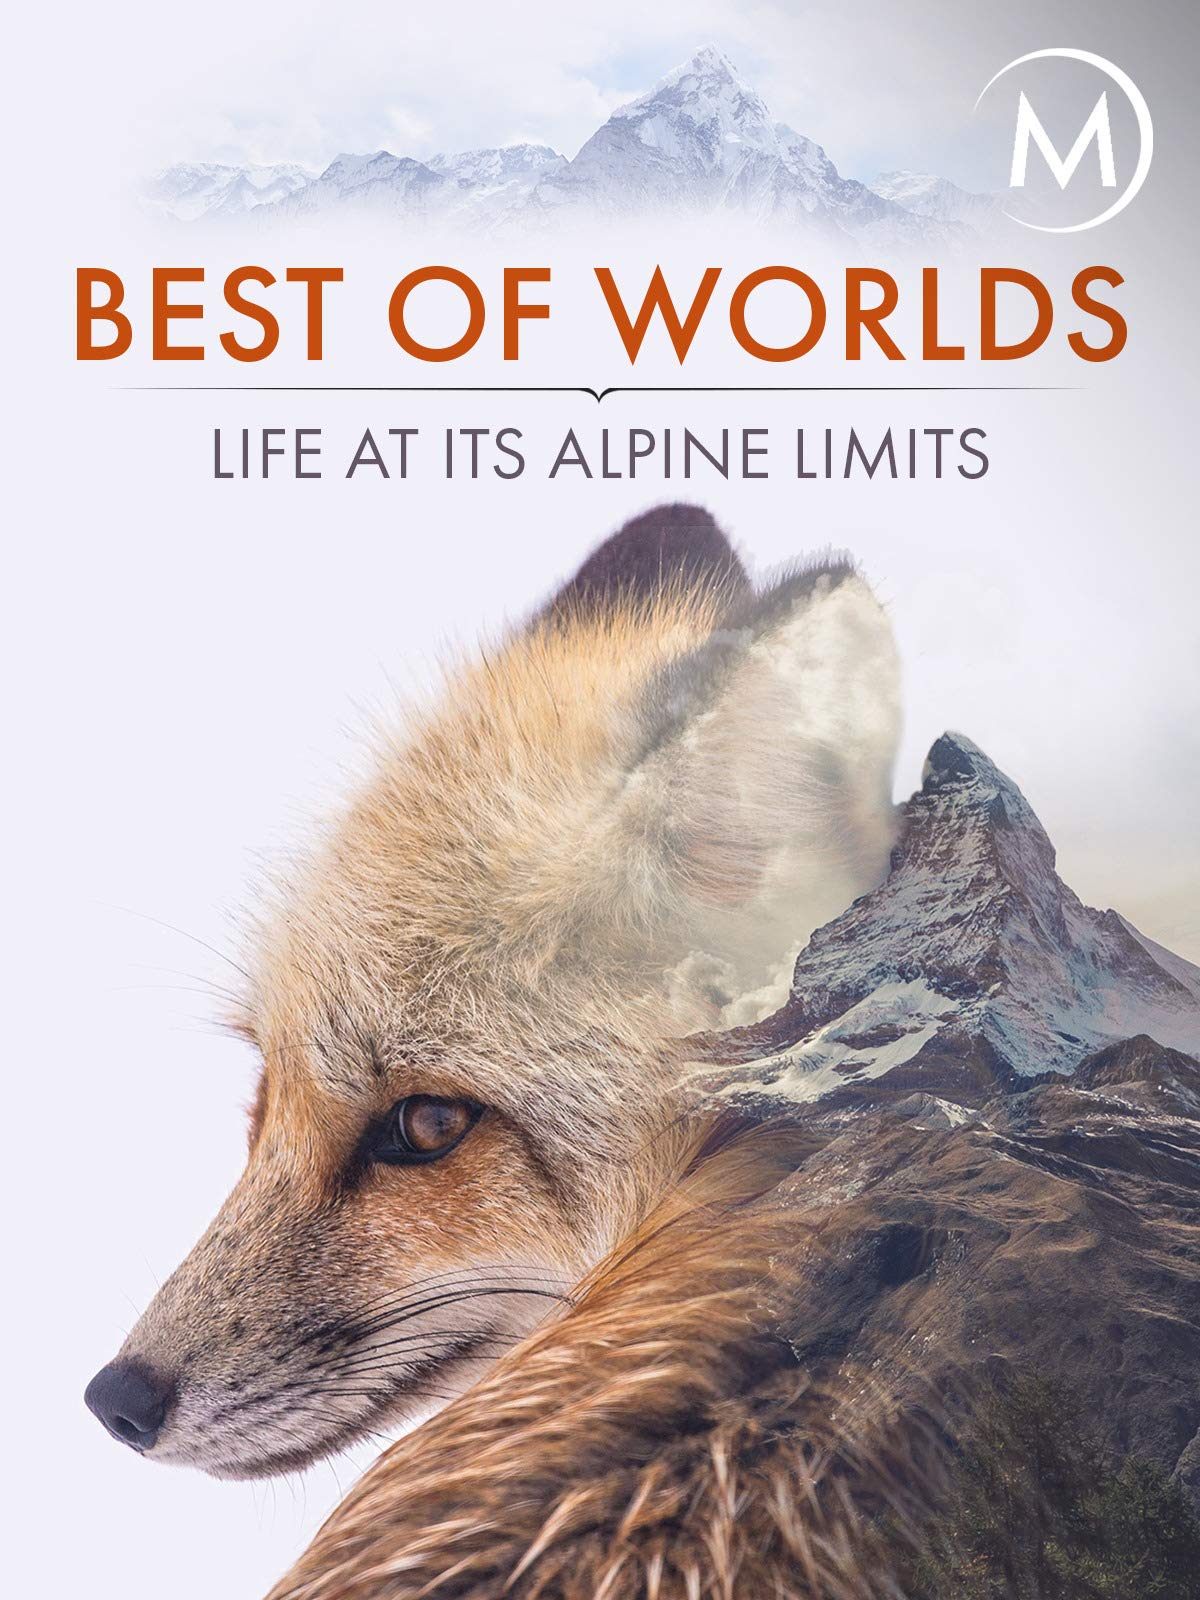 Best of Worlds: Life at its Alpine Limits